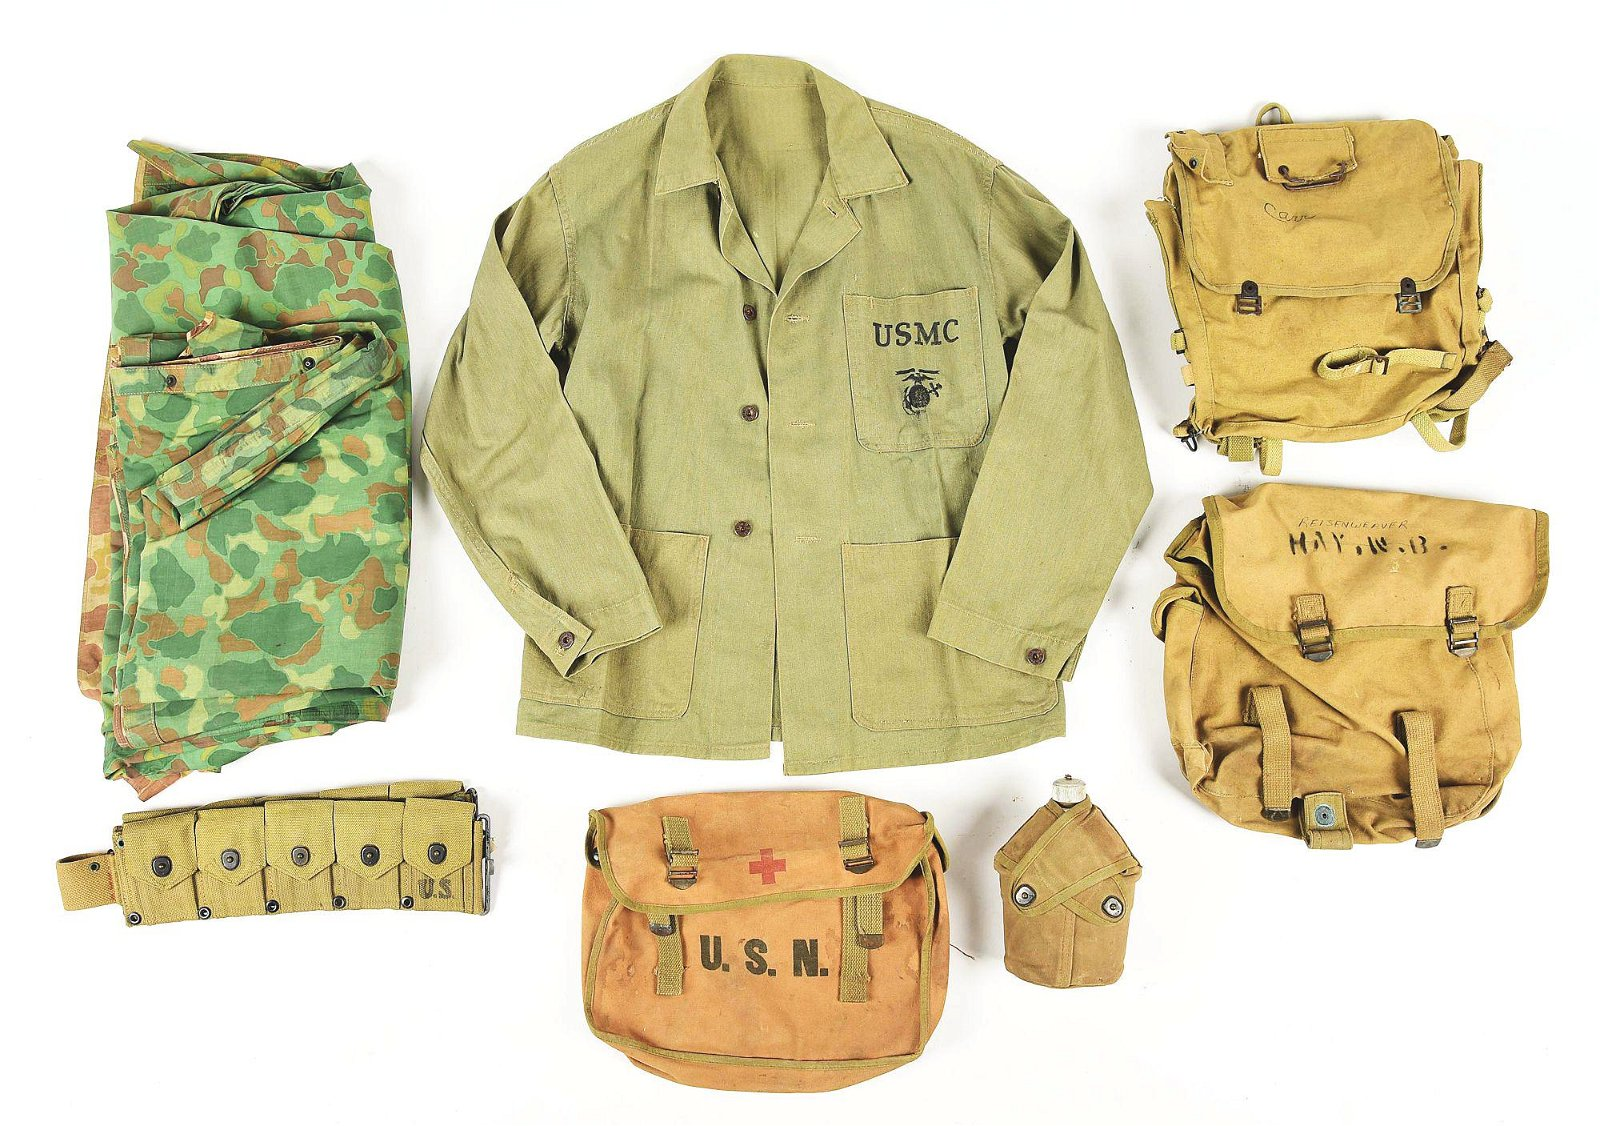 LOT OF WORLD WAR II US NAVY AND USMC UNIFORMS AND FIELD